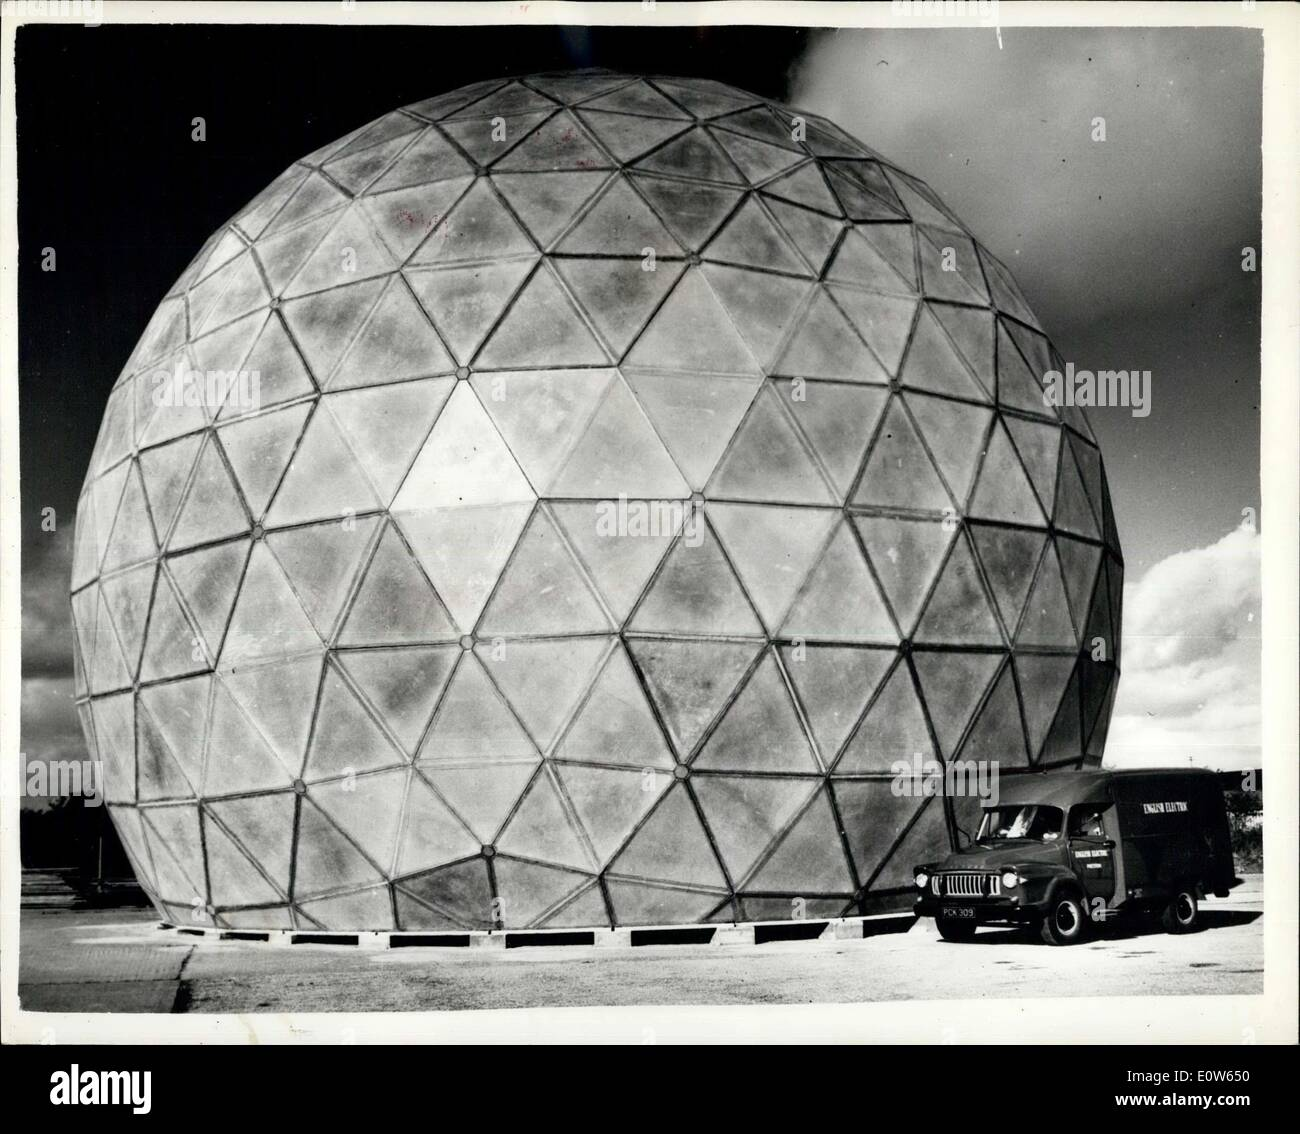 Sep. 18, 1961 - Europe's largest Reinforced Plastics Structure Completed : The largest reinforced plastics structure yest made in Europe, aground radome, which looks like a giant three - quarter football, has just been completed and erected fro test by English electric at Freckleton, lanos . The structure, for the protection of defence radar equipment, is designed to withstand hurricane - force winds and temperatures well below zero. It is nearly 70 feet in diameter and more than 50 feet high. Photo shows The plastic radome. - Stock Image